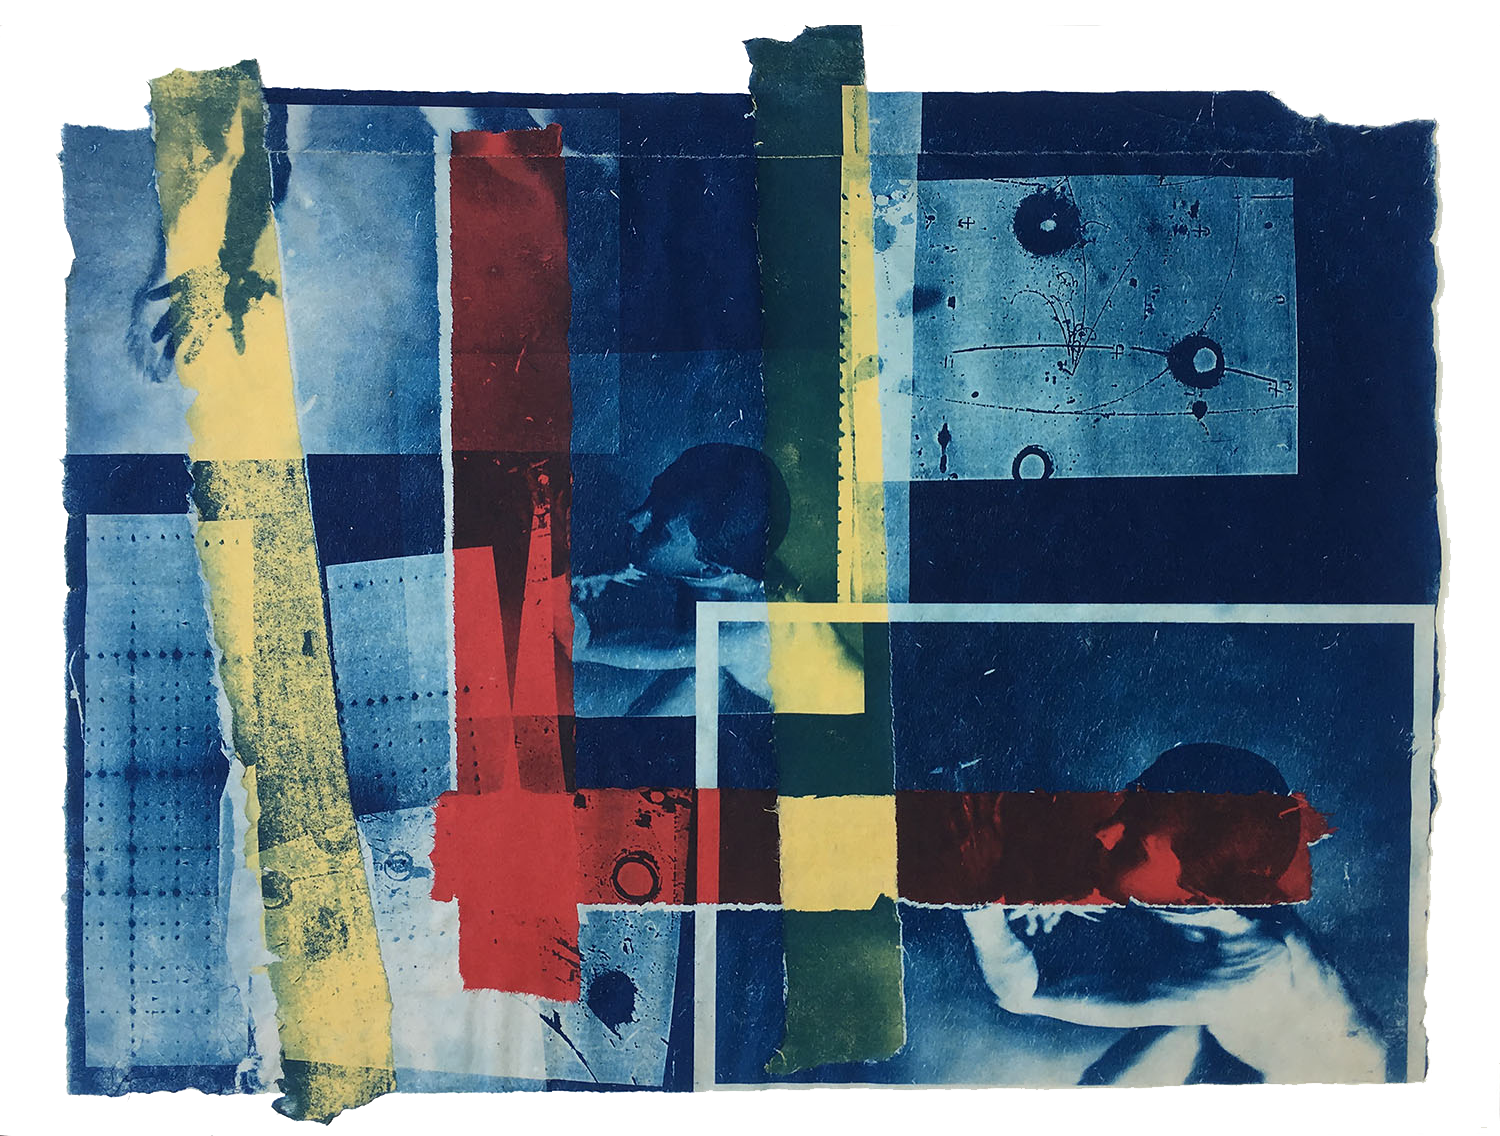 Homage a Piet, 1997, Cyanotype with Chine Colle, 19 x 26